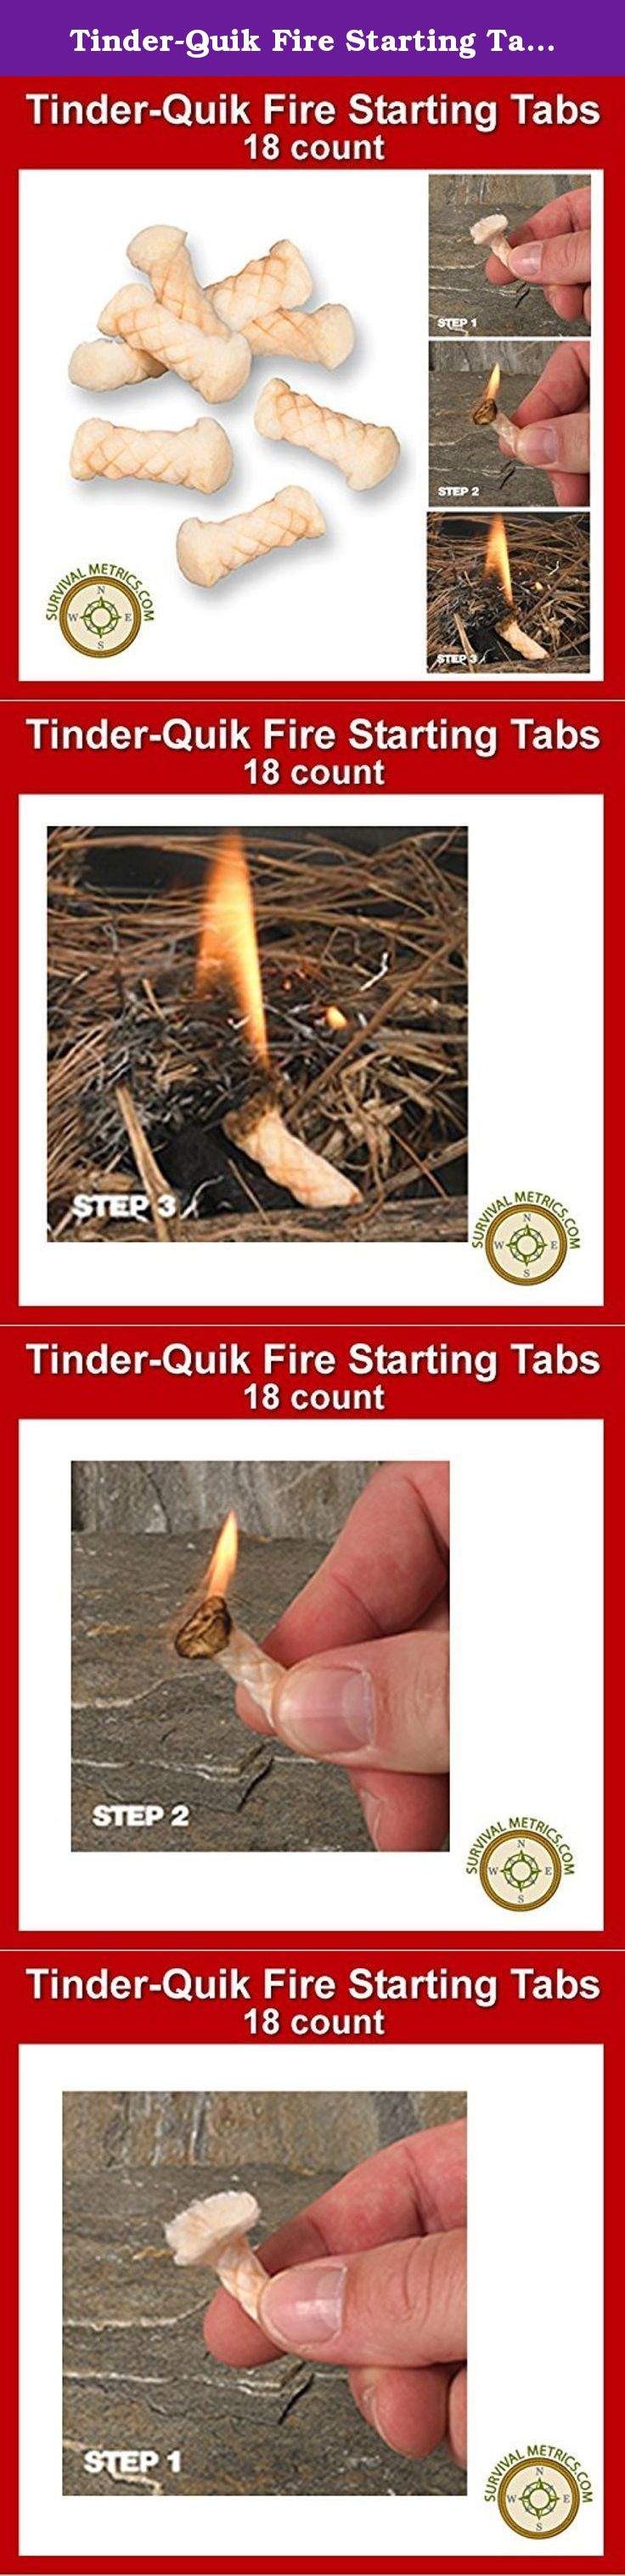 Tinder-Quik Survival Fire Starting Tabs Just Pull /& Spark to Ignite! 18 Count